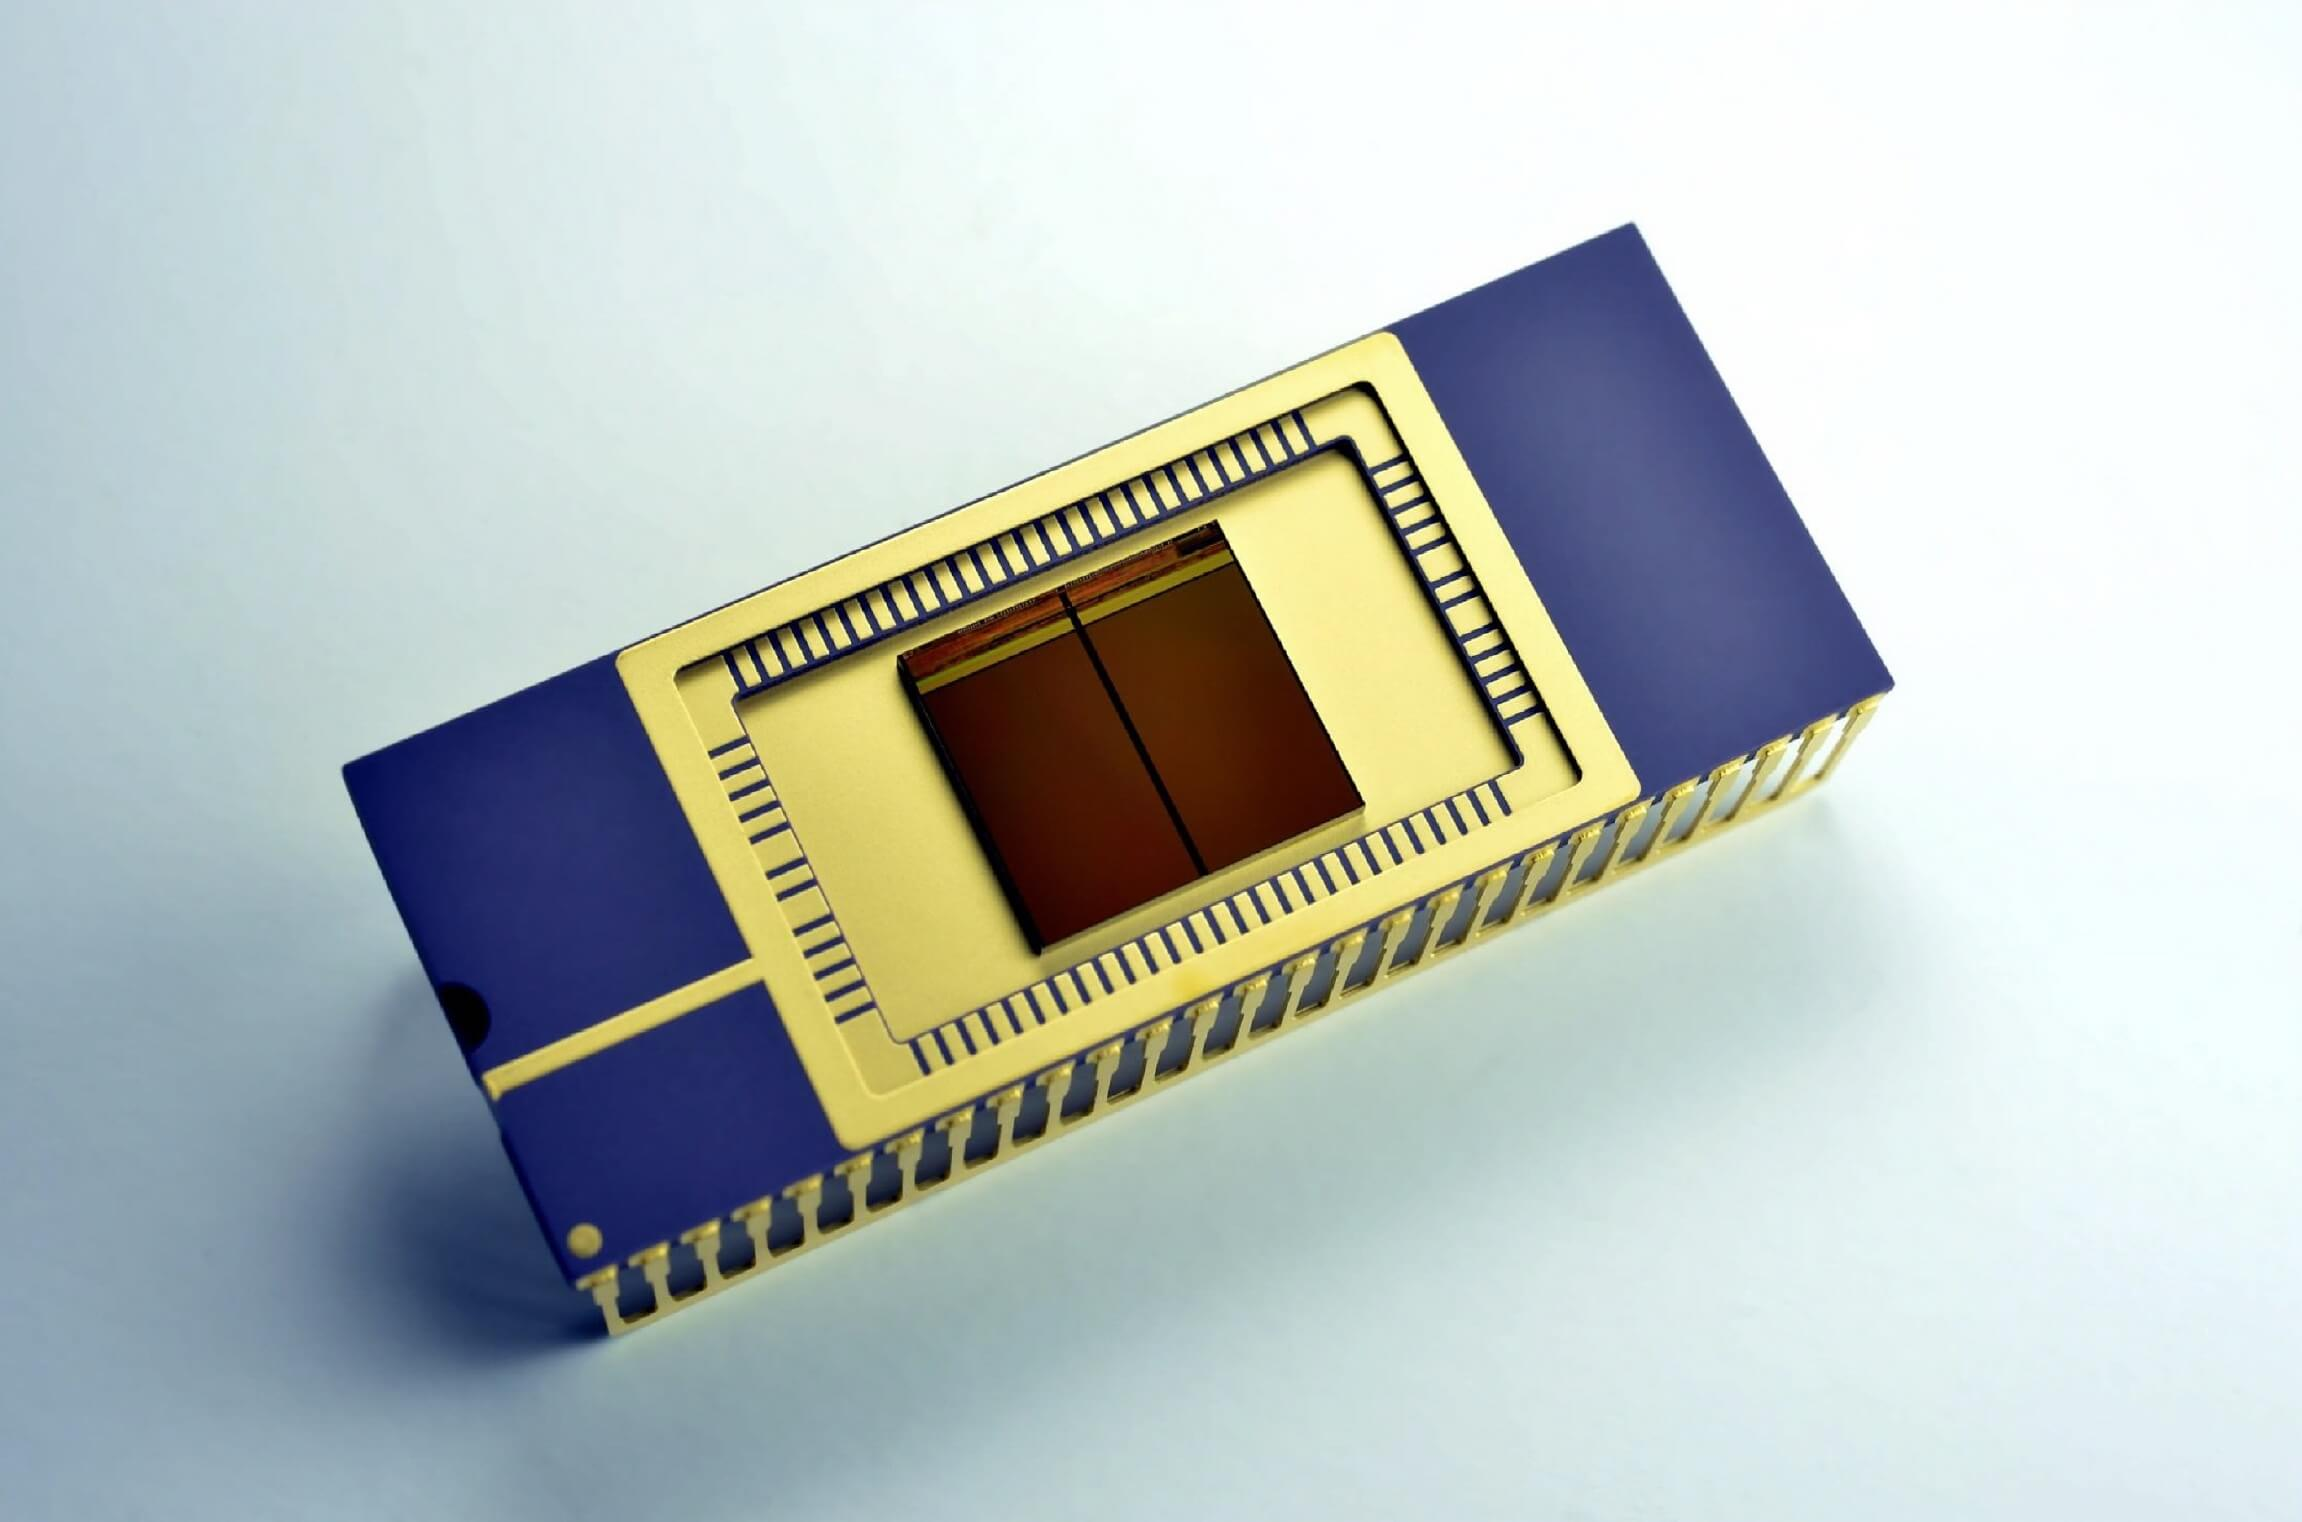 Samsung said to be developing industry's first 160-layer NAND flash memory chip